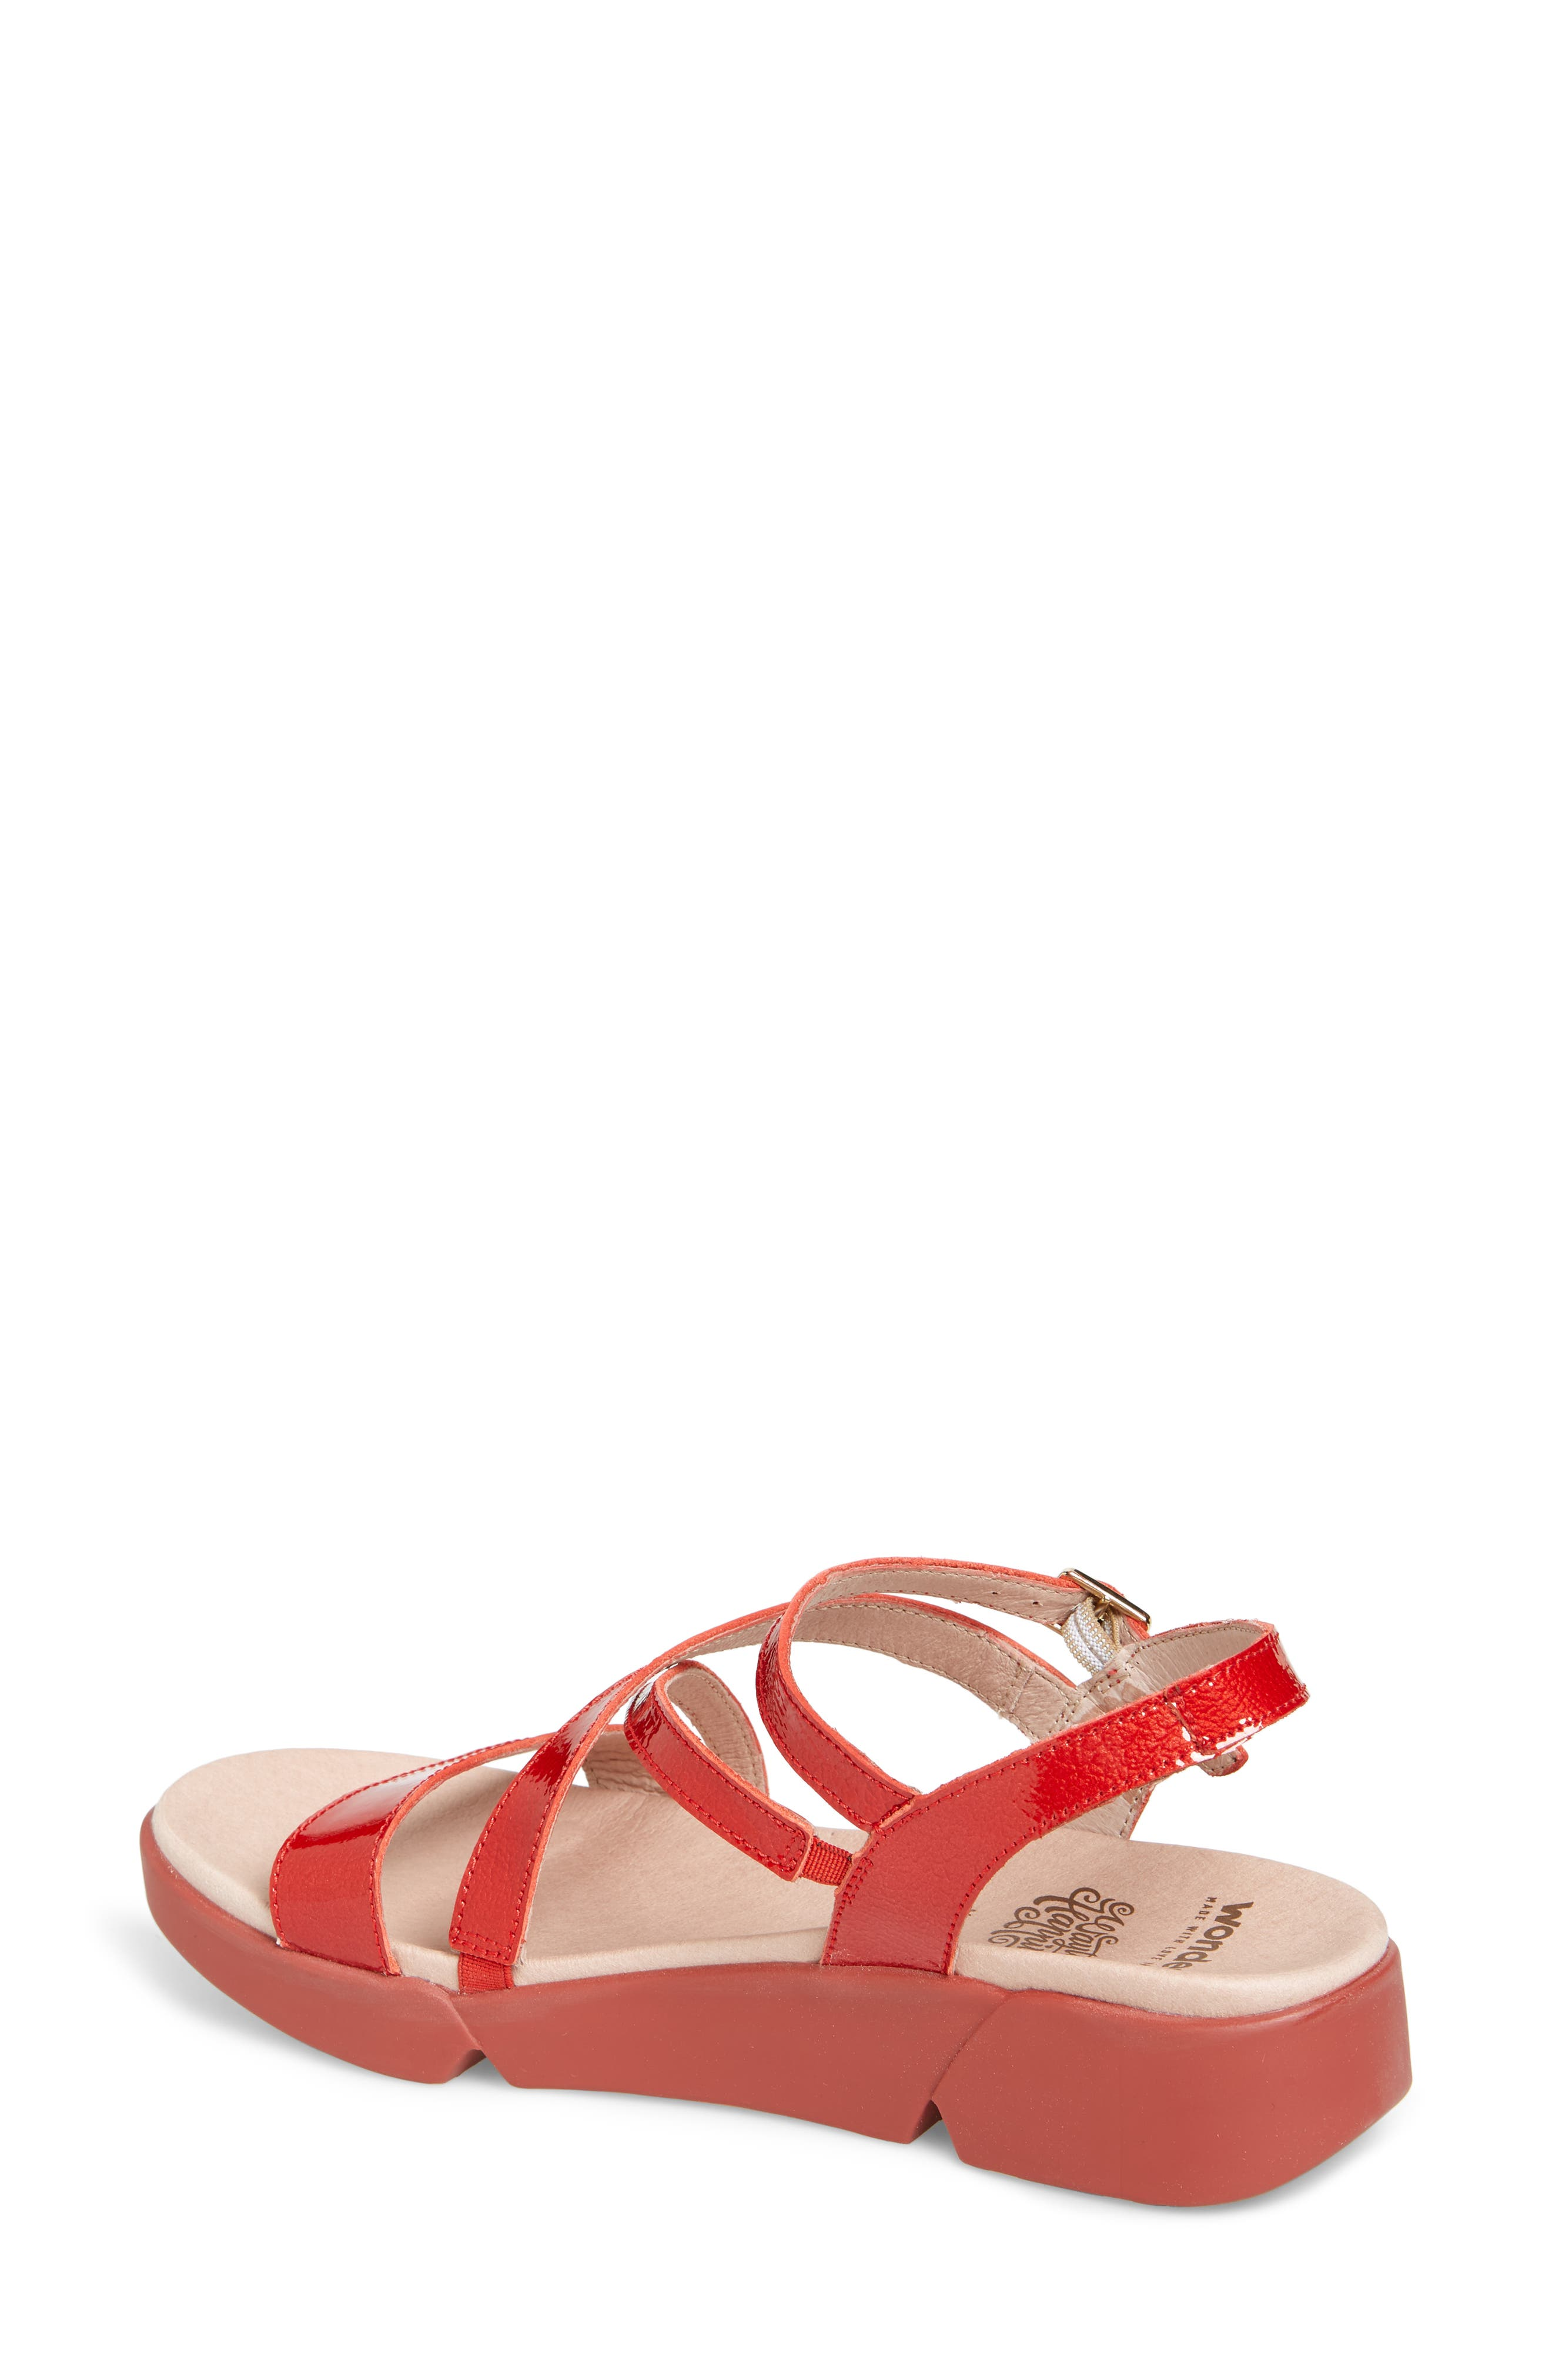 Wedge Sandal,                             Alternate thumbnail 2, color,                             Red Patent Leather